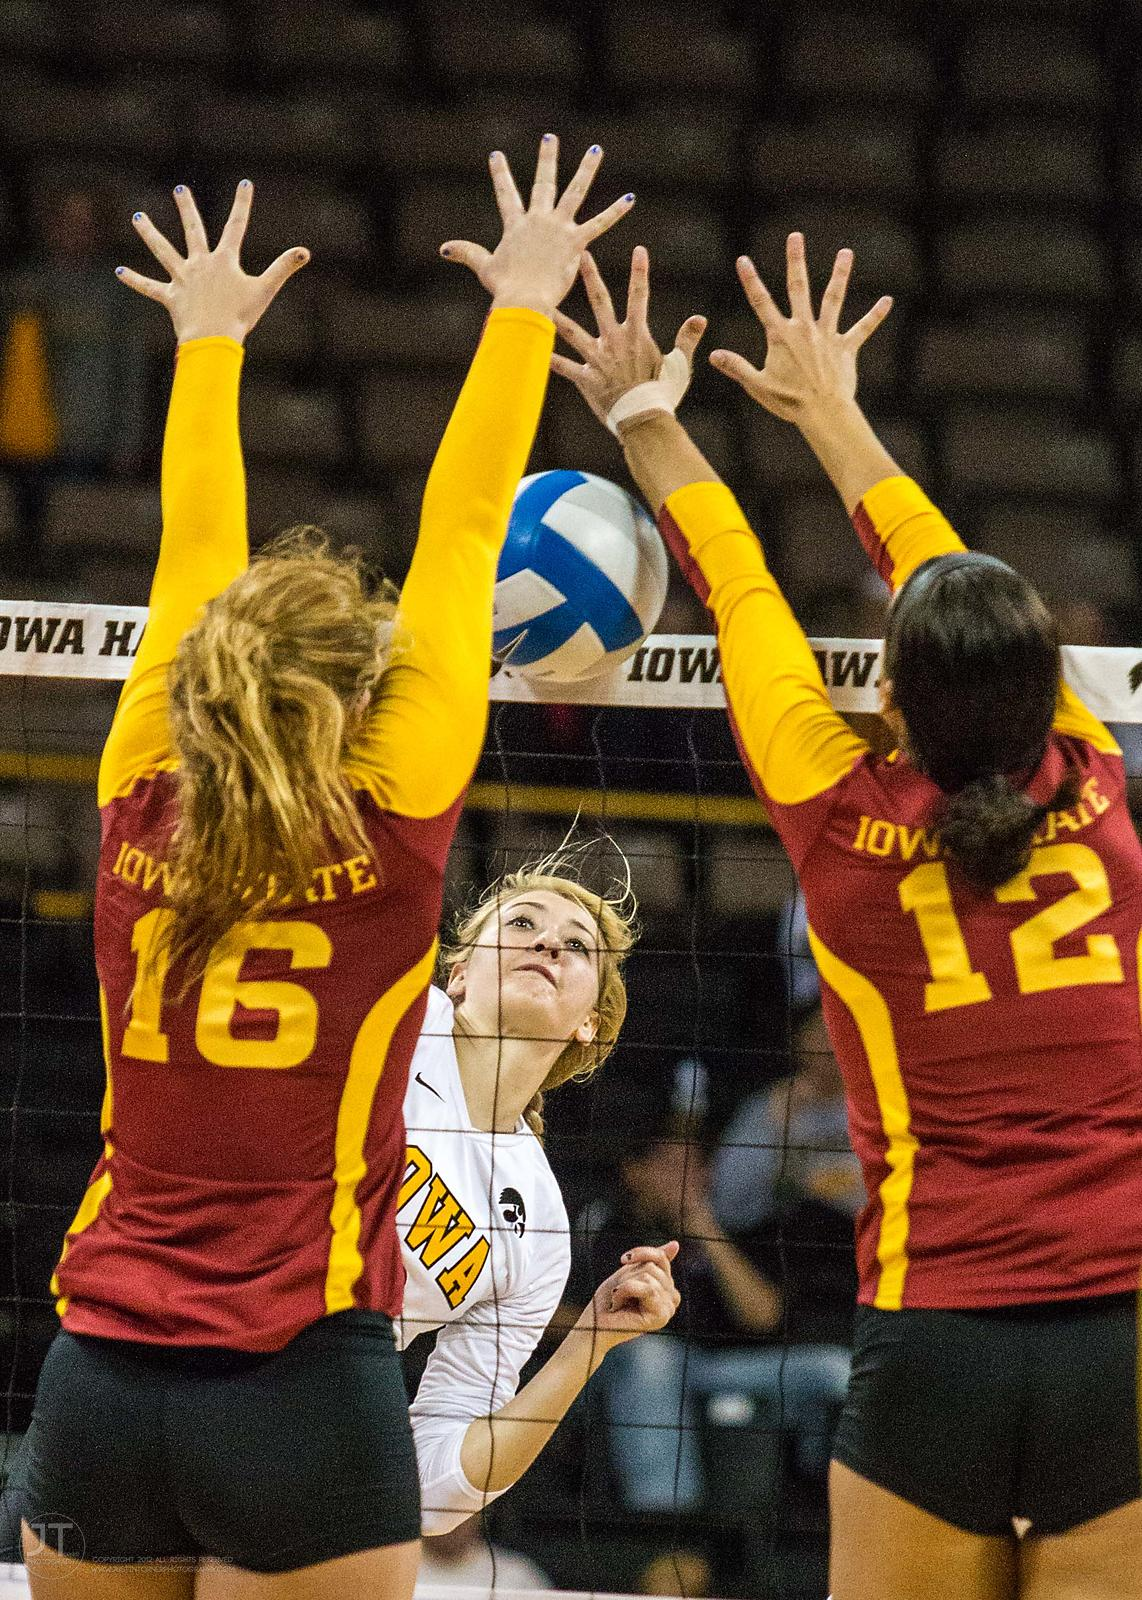 Volleyball Iowa State vs Iowa, Sept 21, 2013 photos